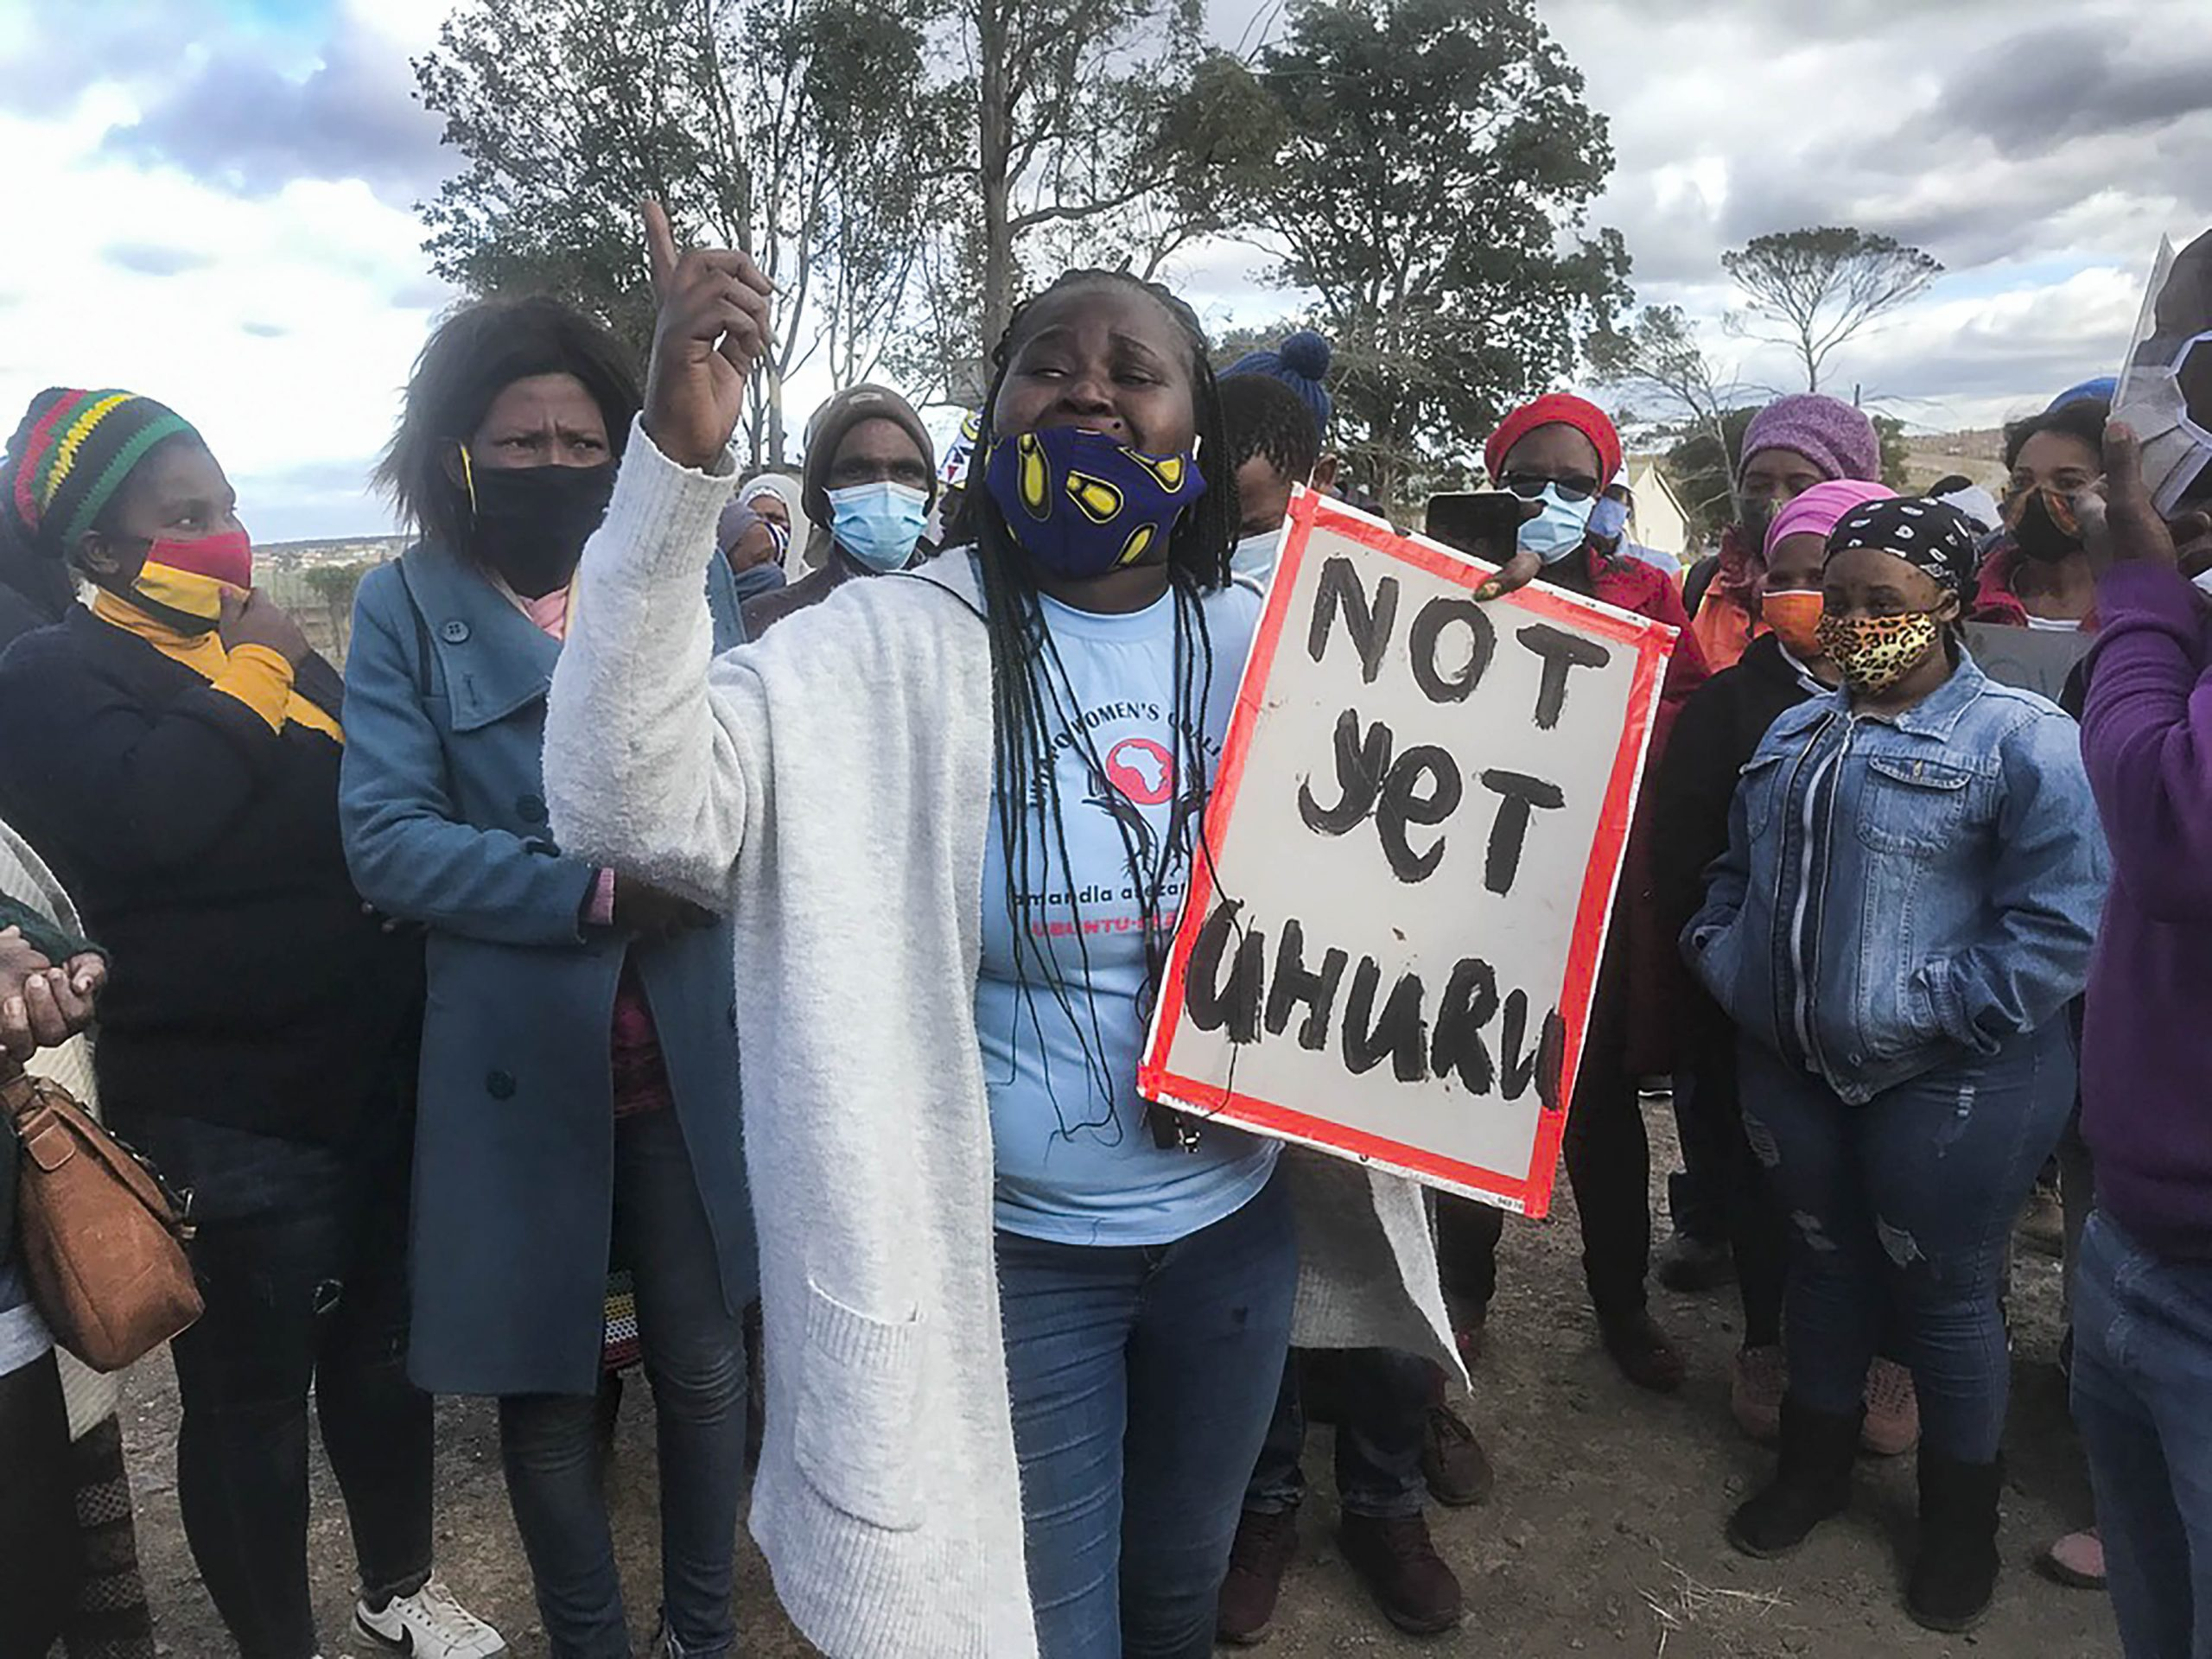 7 July 2020: A distraught Athini Ngxumza addresses protesters during the water strike alongside the N2 highway after police officers fired tear gas into the crowd.